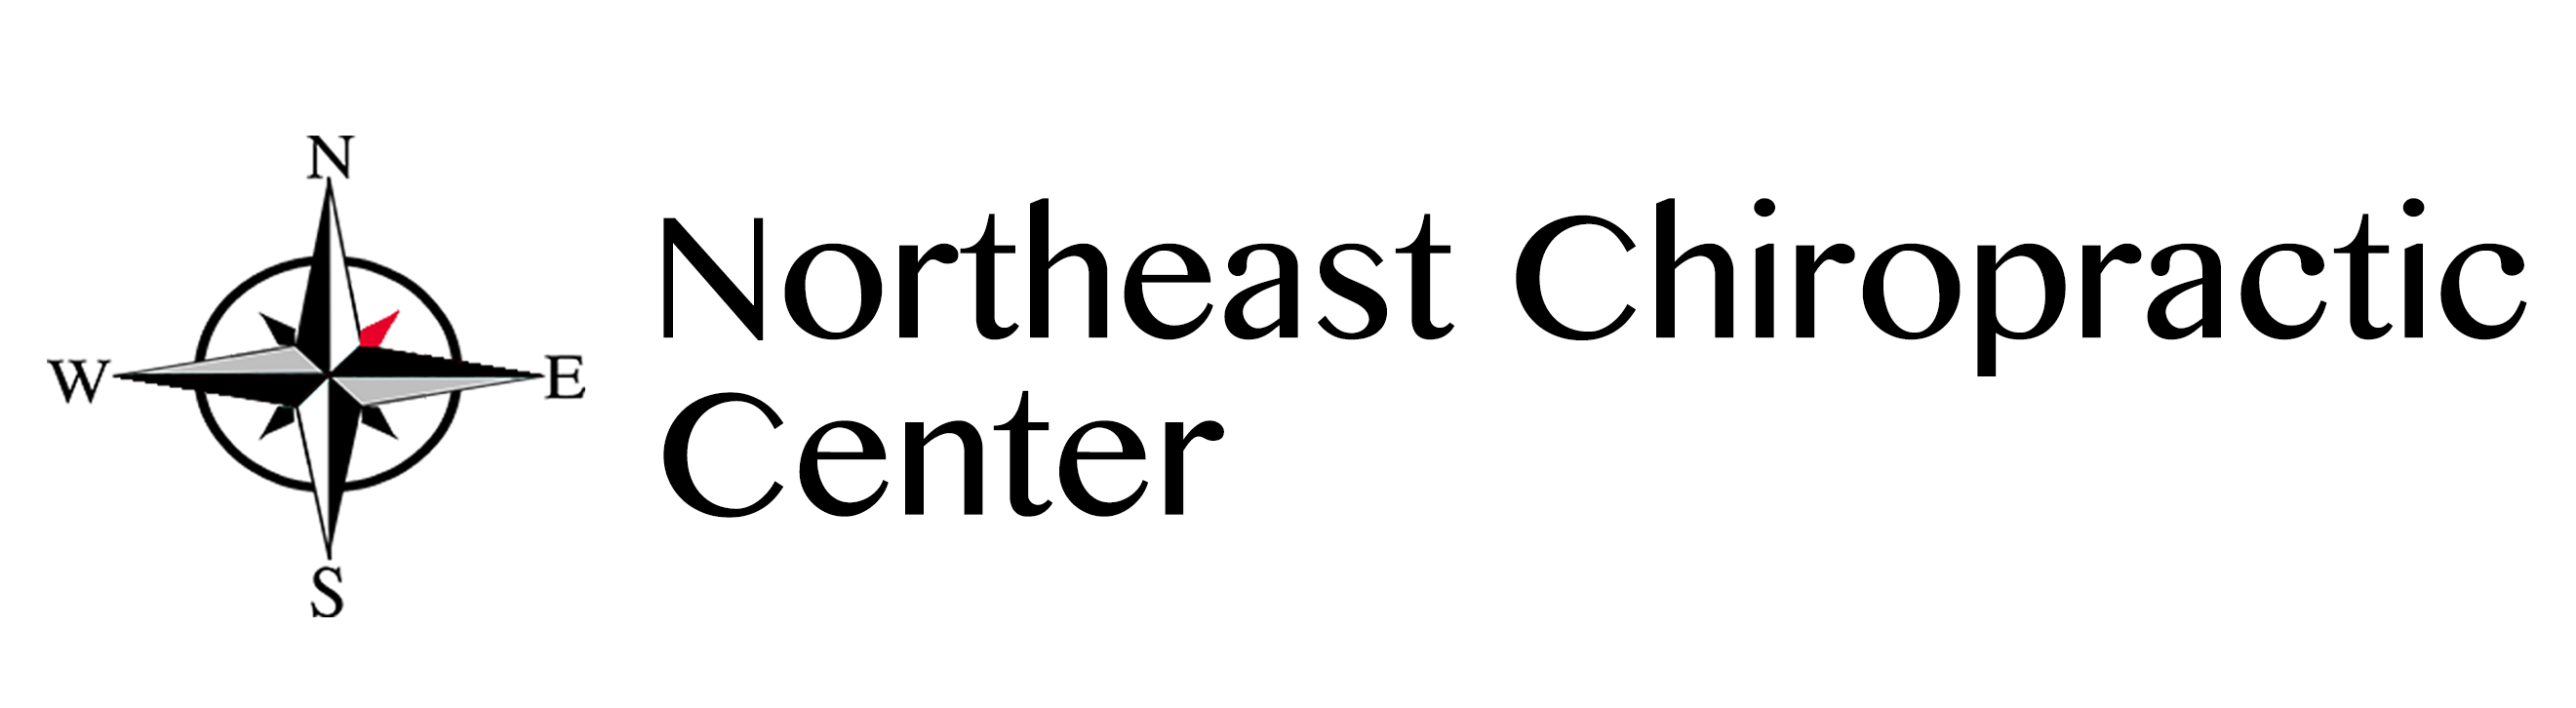 Northeast Chiropractic Center